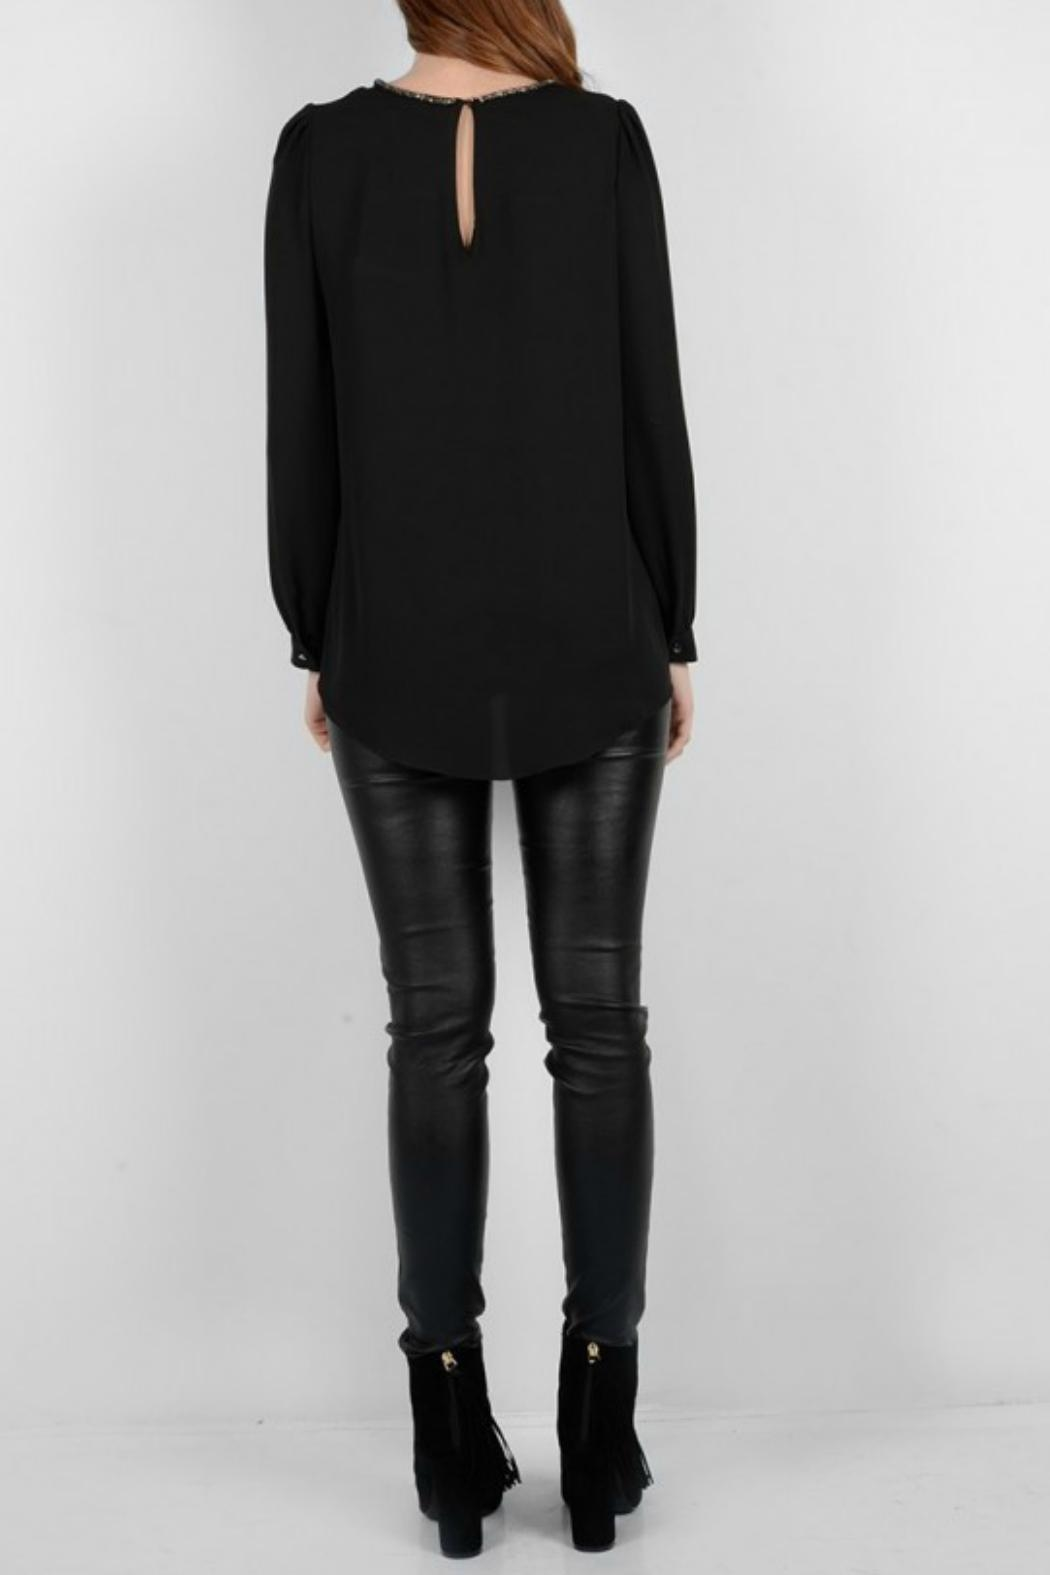 Molly Bracken Pullover Dressy Blouse - Back Cropped Image